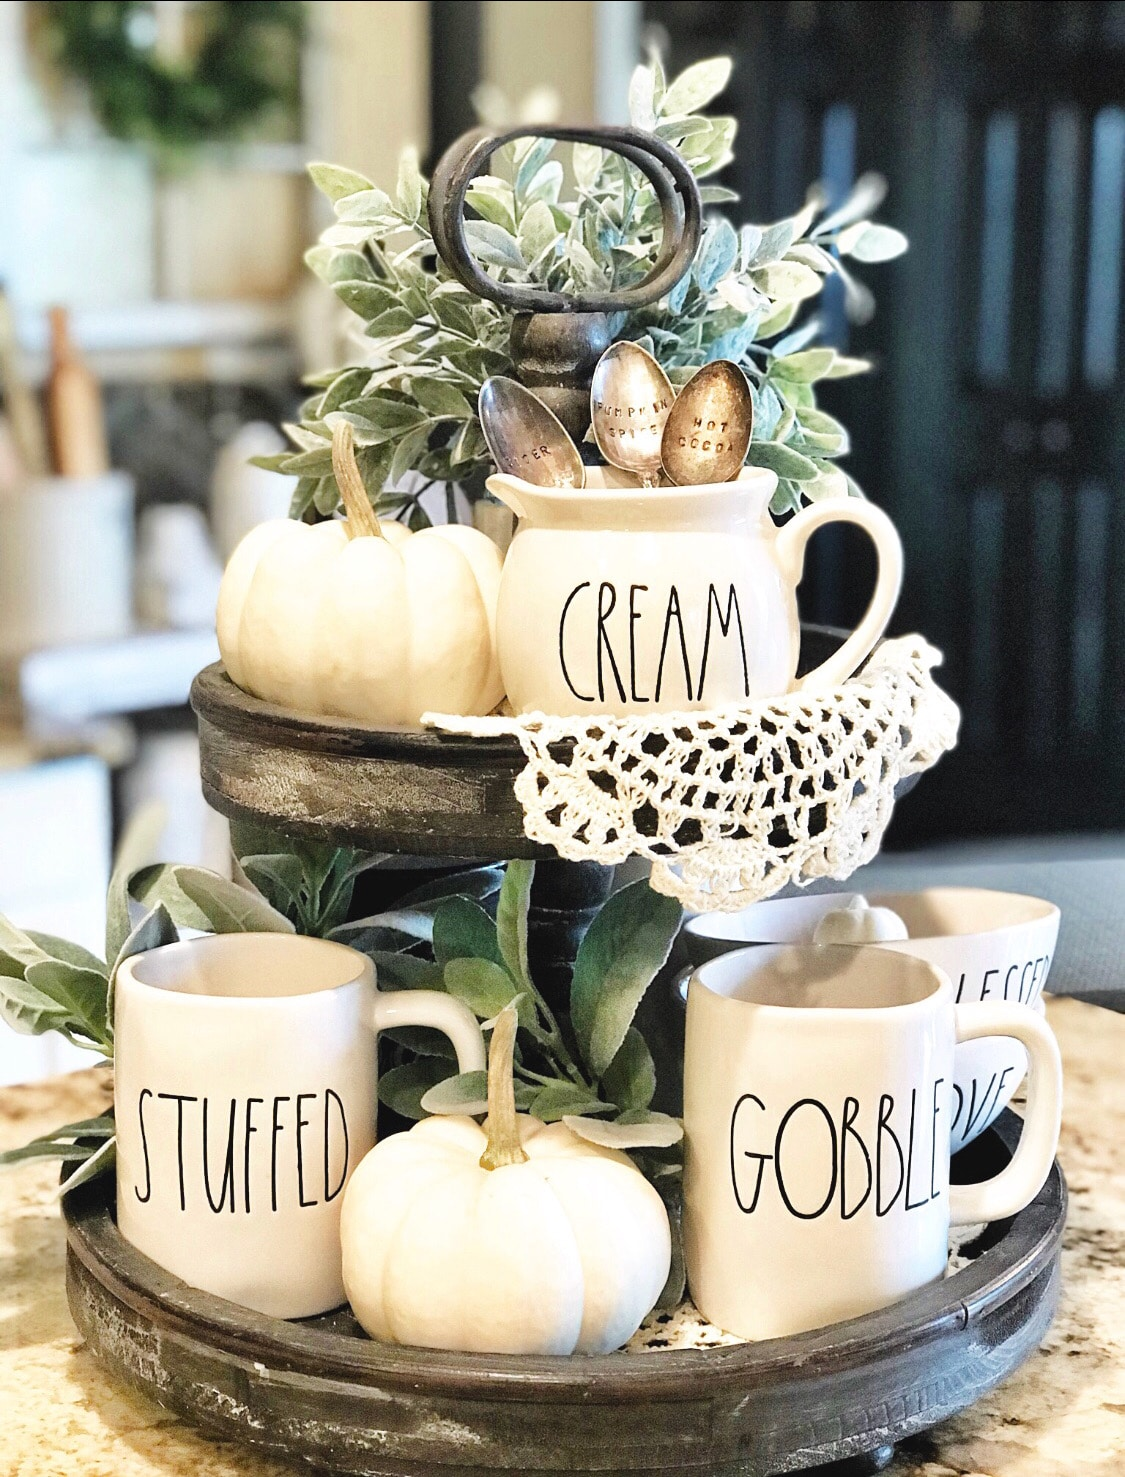 Fall Decor rustic two tiered tray by Farm to Table Creations. This tray idea is packed with rae dunn goodness, plants, white pumpkins and delicate lace. This tray can stay out for Halloween, all autumn and Thanksgiving.